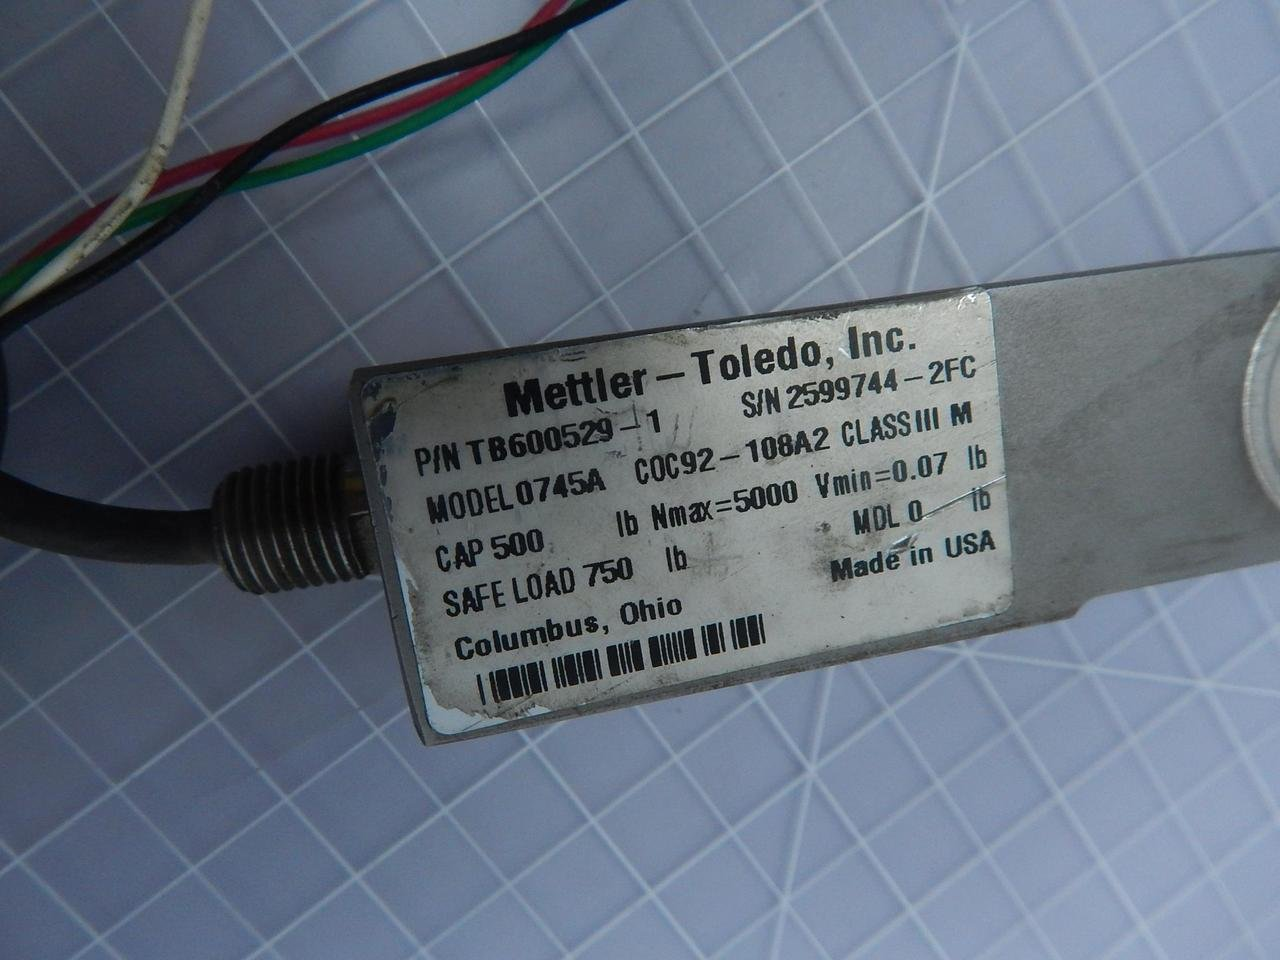 Mettler Toledo Tb600529 1 0745a Load Cell T108297 Wiring Industrial Scientific